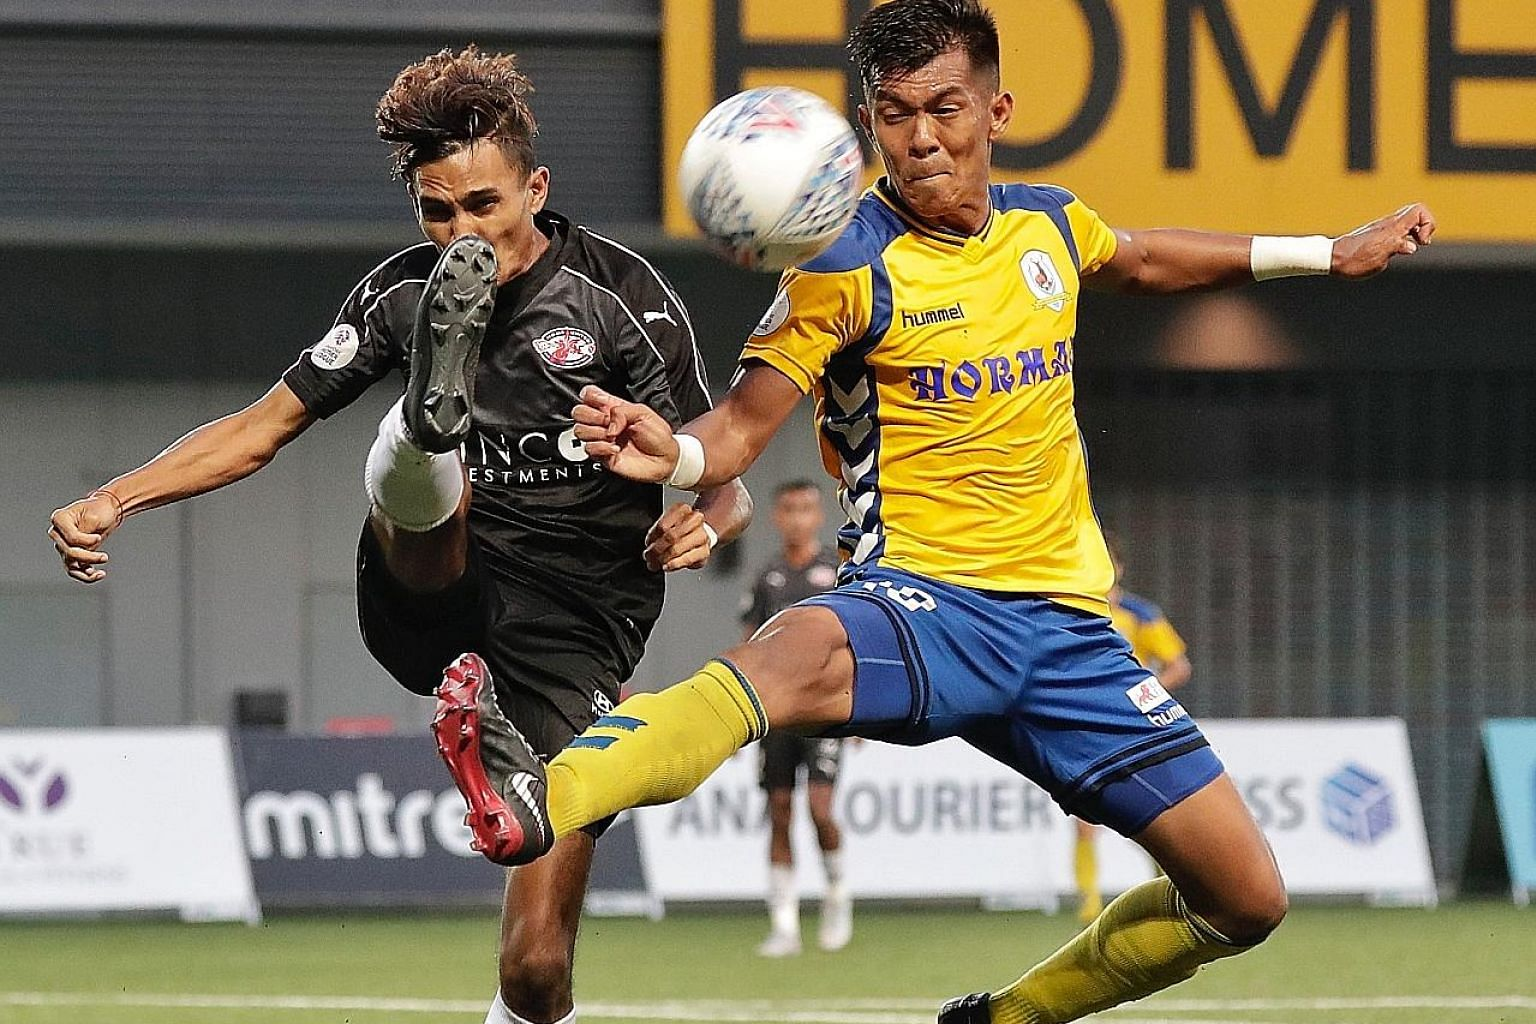 Tampines Rovers' Khairul Amri (right) challenges Home United's Aqhari Abdullah for the ball during a Singapore Premier League match on Sept 29. Average attendance jumped to 1,800 this year from just below 1,000 last year.